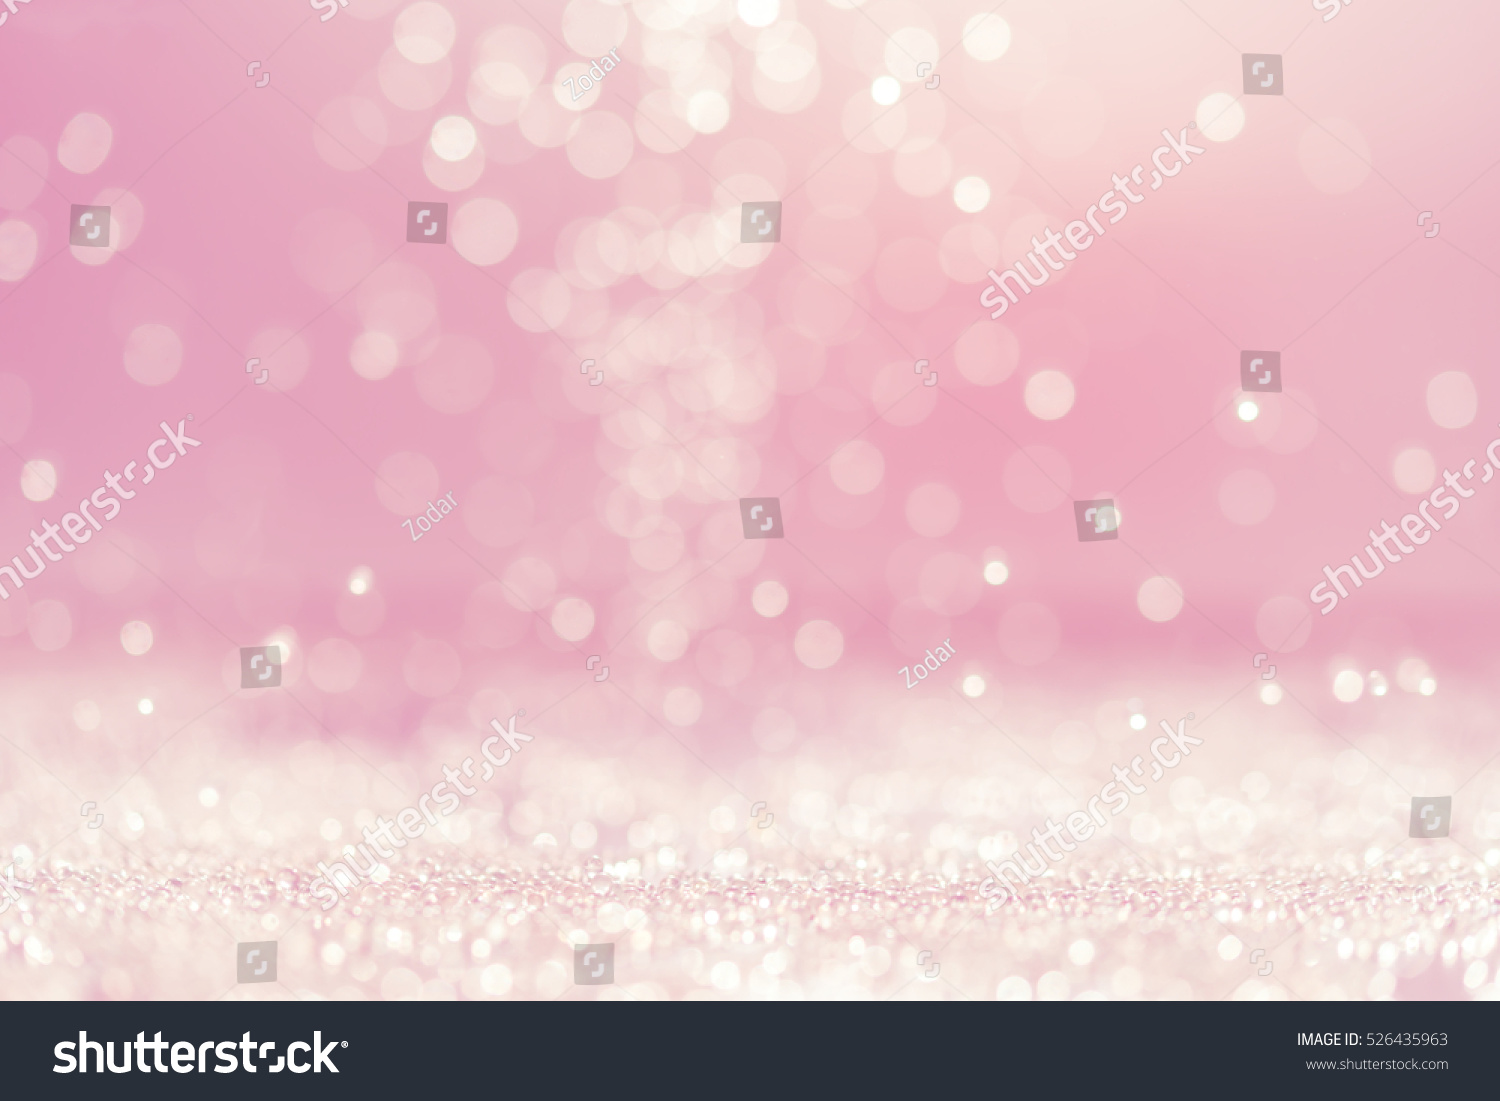 Pink Abstract bokeh background #526435963